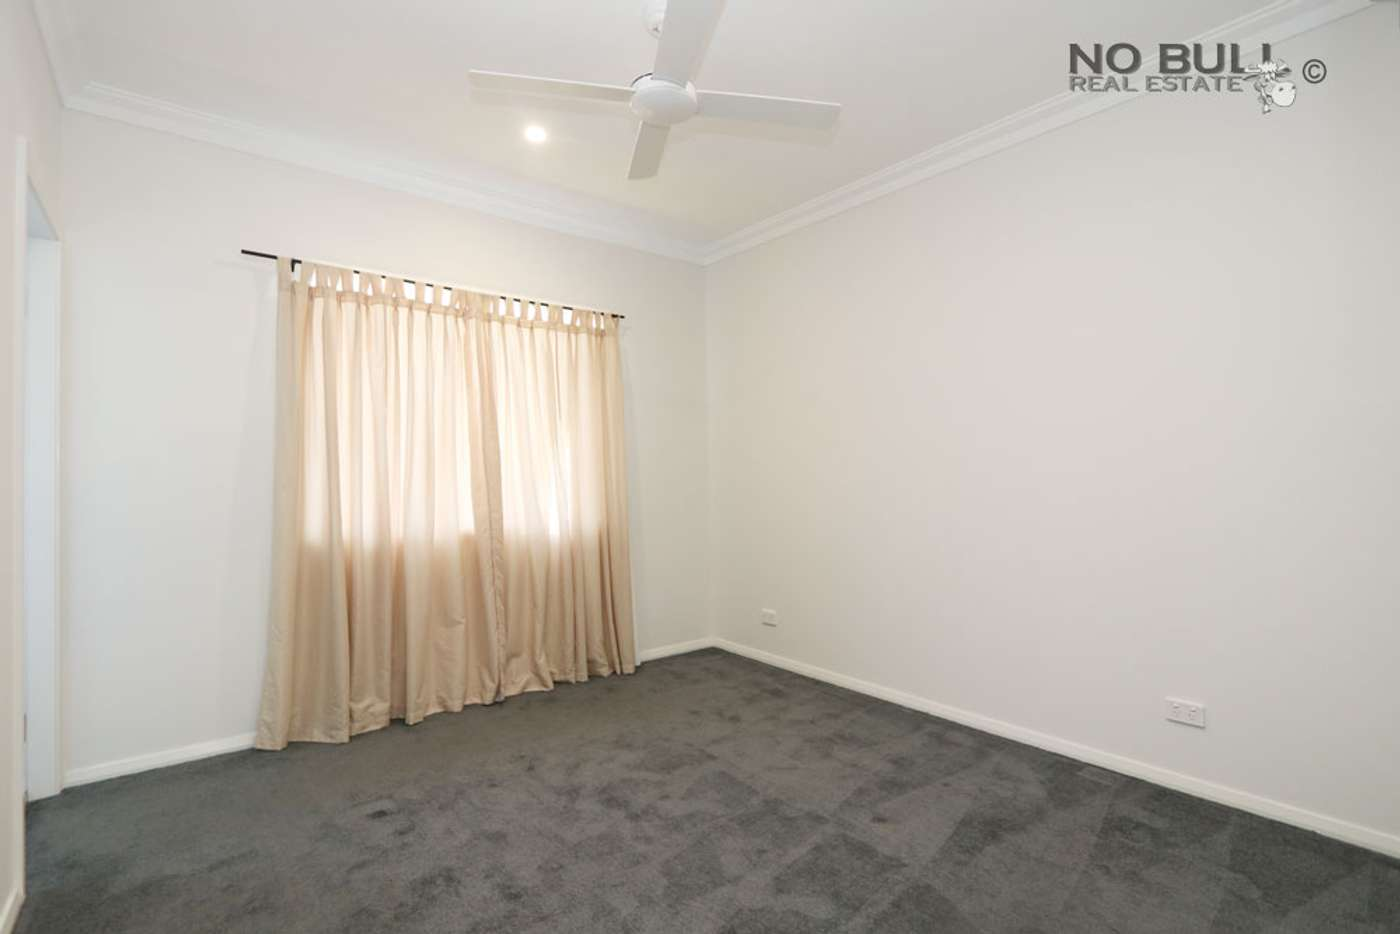 Sixth view of Homely house listing, 37 Conveyor Street, West Wallsend NSW 2286